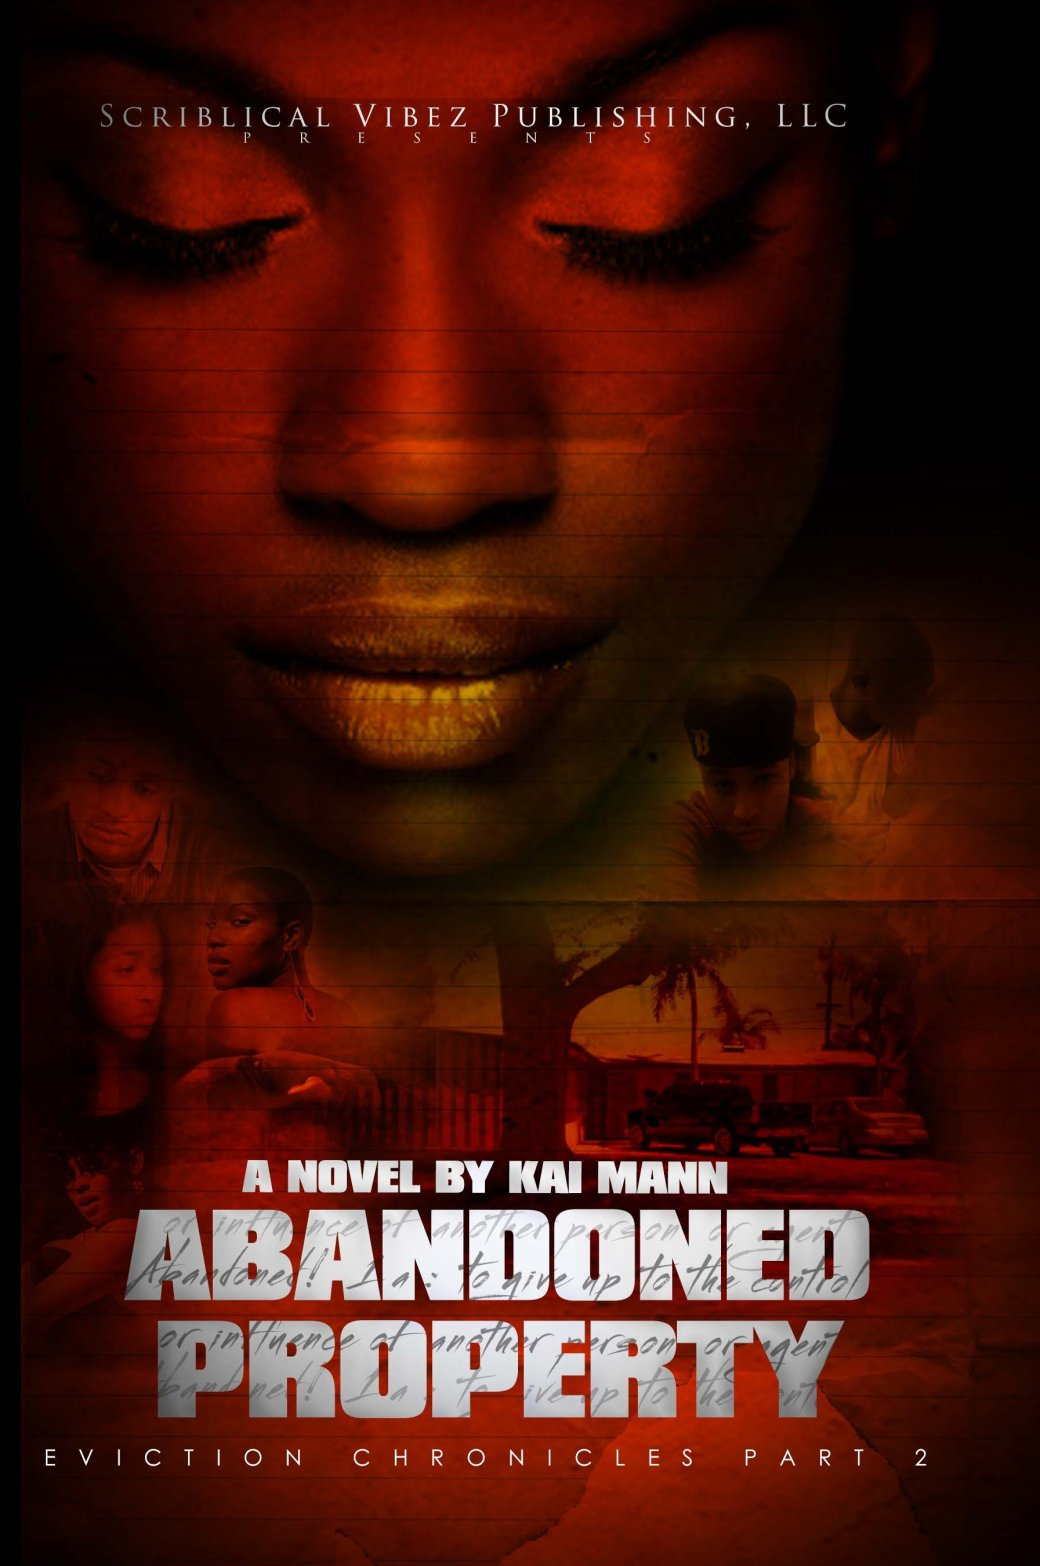 Abandoned Property front cover made by me